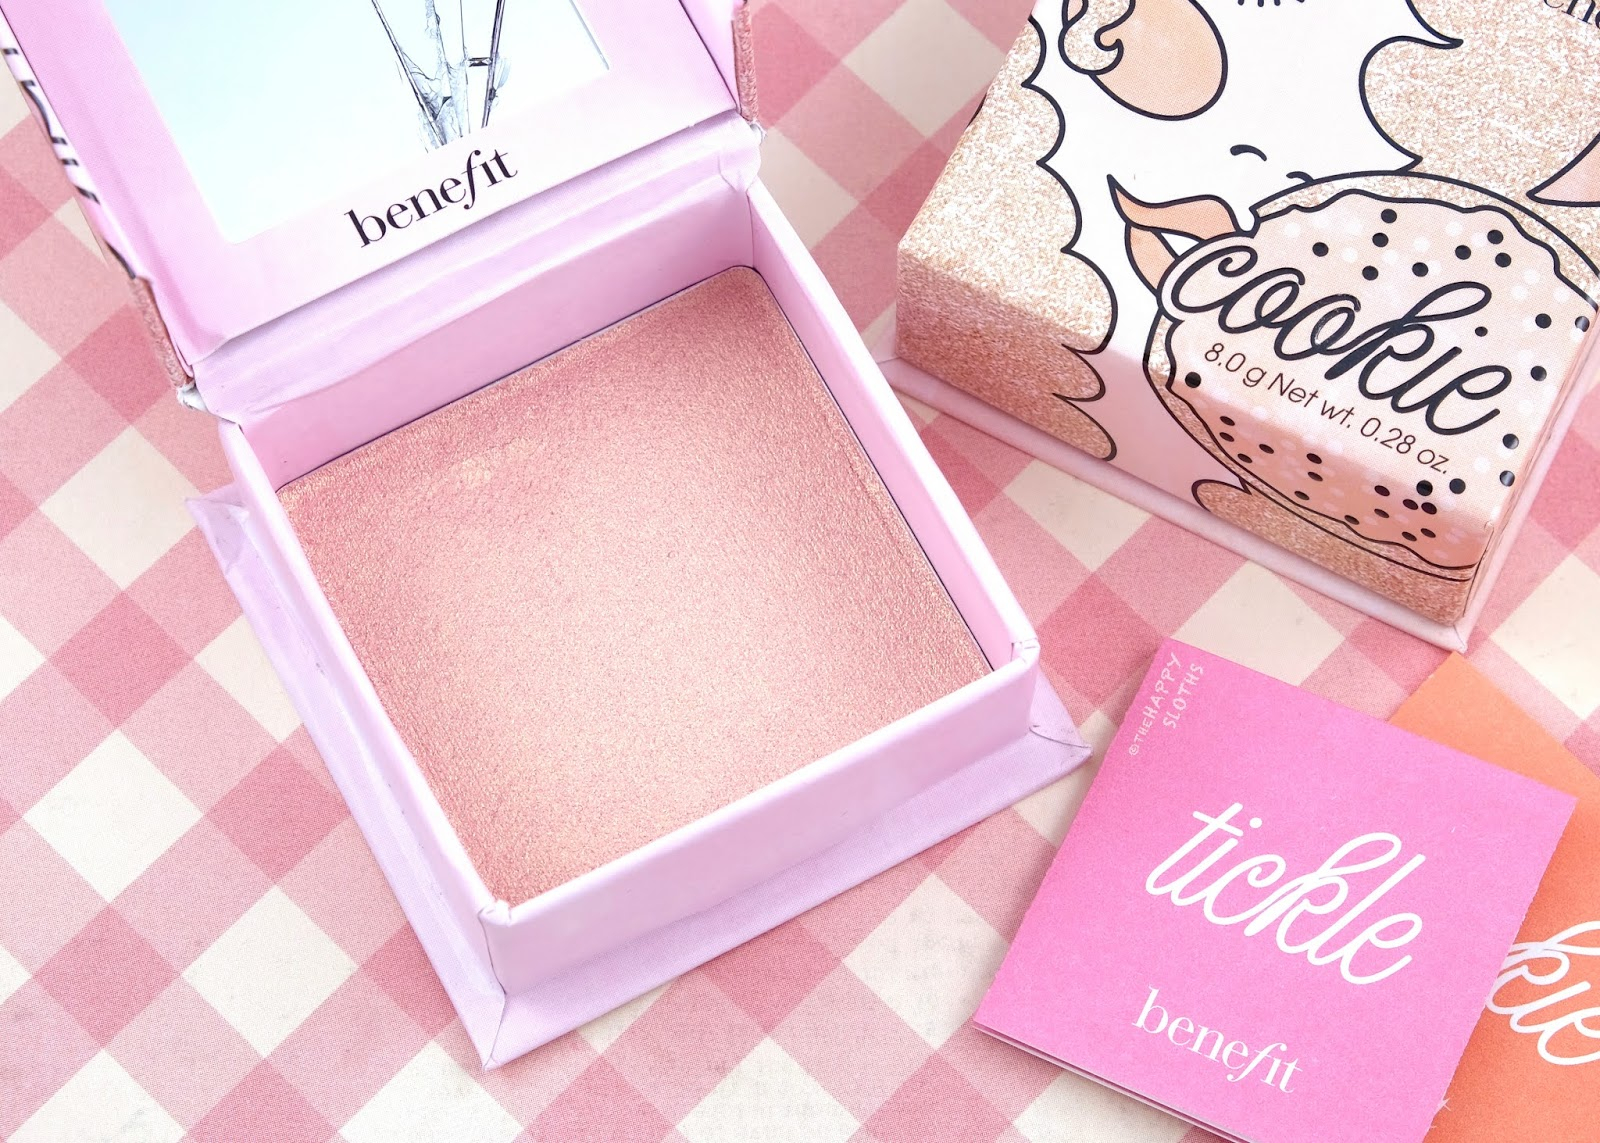 Benefit Cosmetics | Tickle Highlighter: Review and Swatches